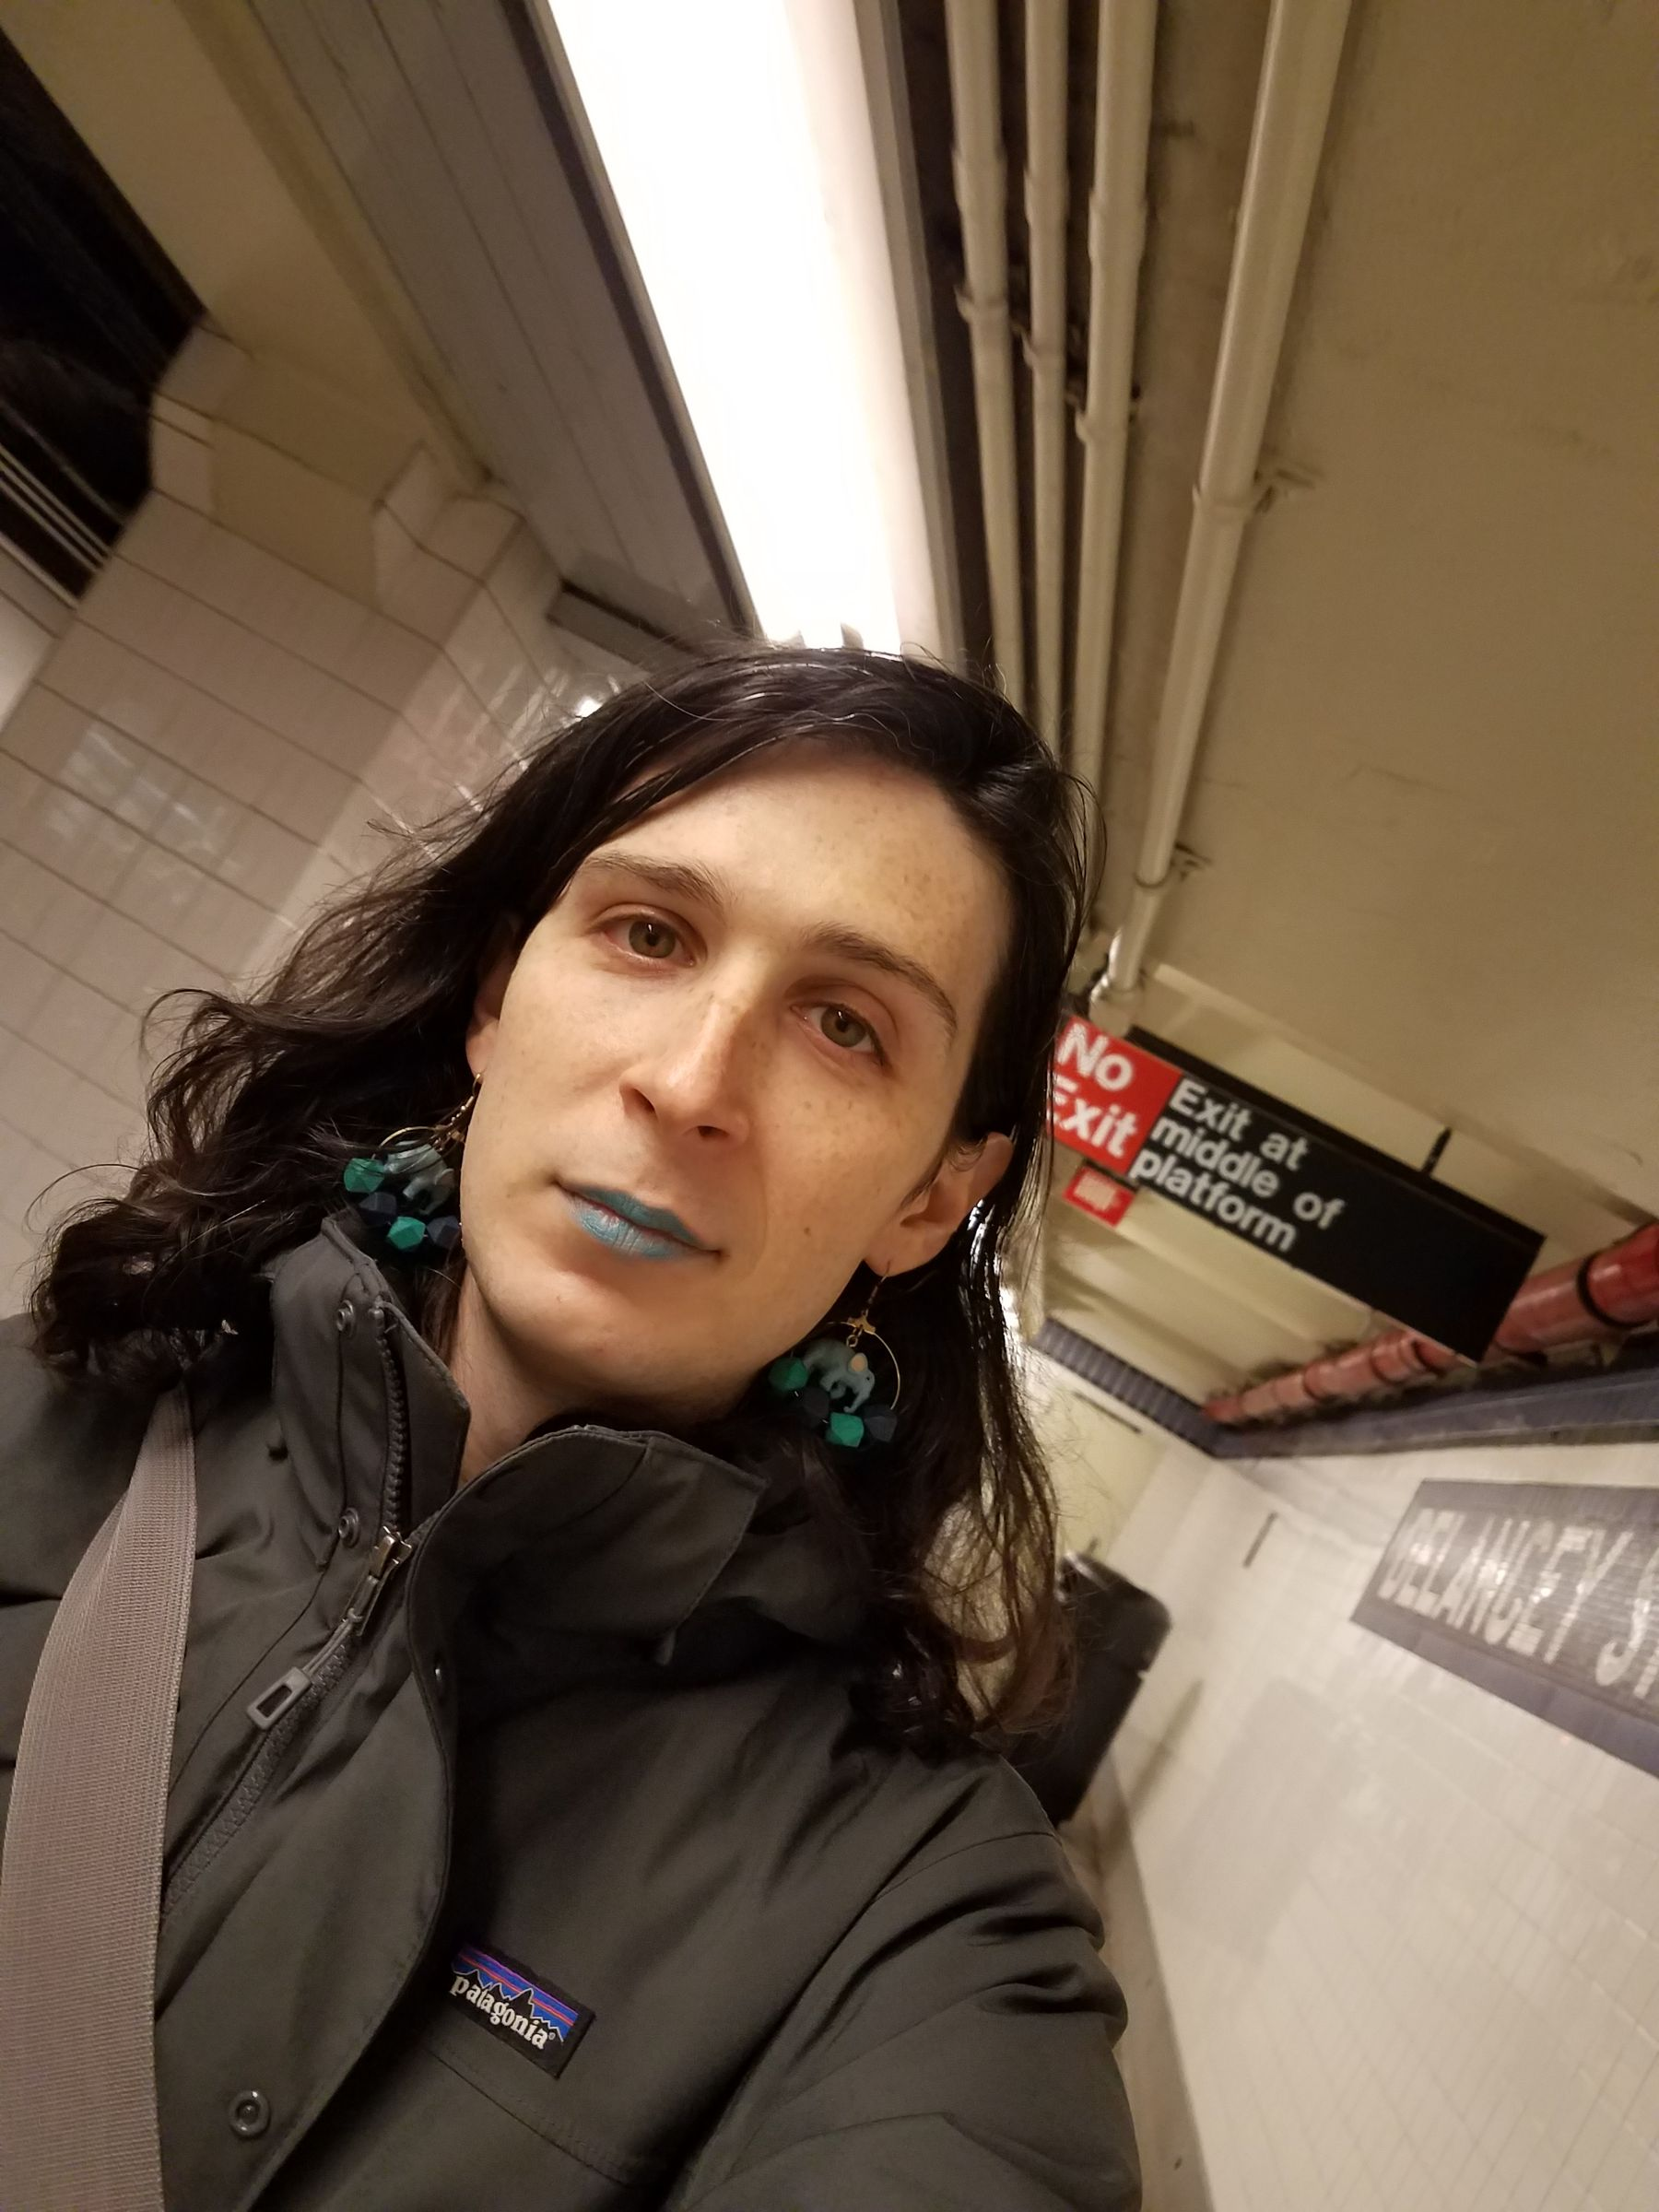 Selfie photo of me on a subway platform, with the Delancey Street tile mosaic on the wall. I'm in a gray winter coat, wearing blue lip color and blue earrings with plastic elephants dangling from them.